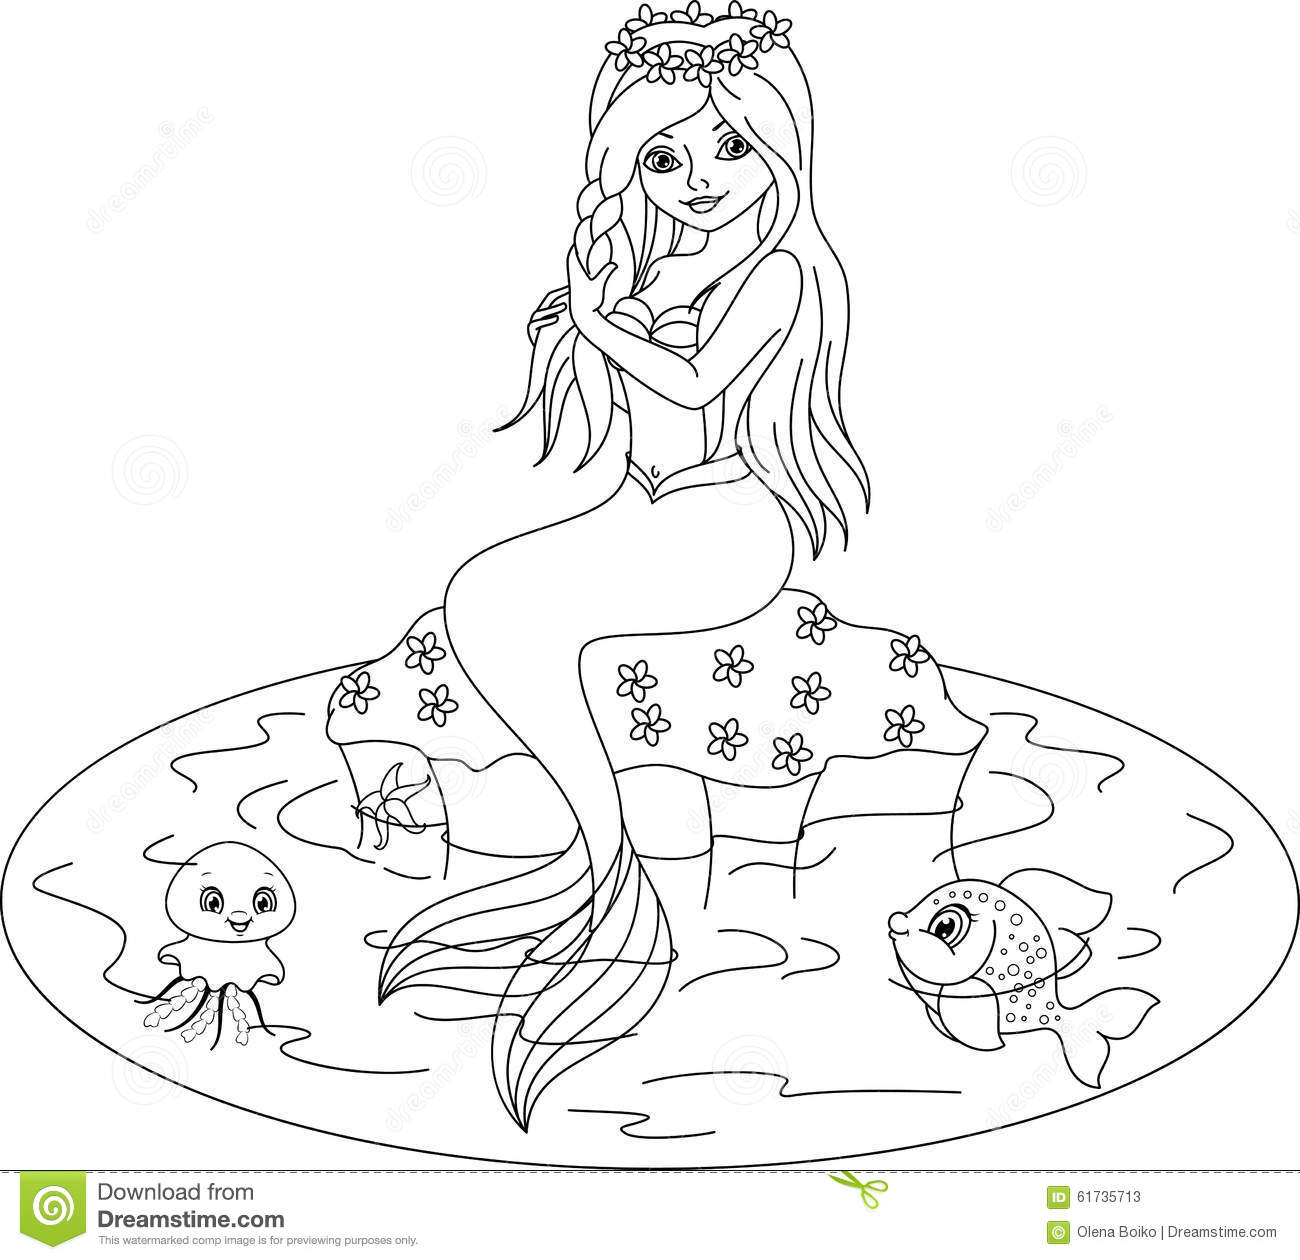 cute mermaid coloring pages Mermaid coloring page stock vector. Illustration of fantasy   61735713 cute mermaid coloring pages